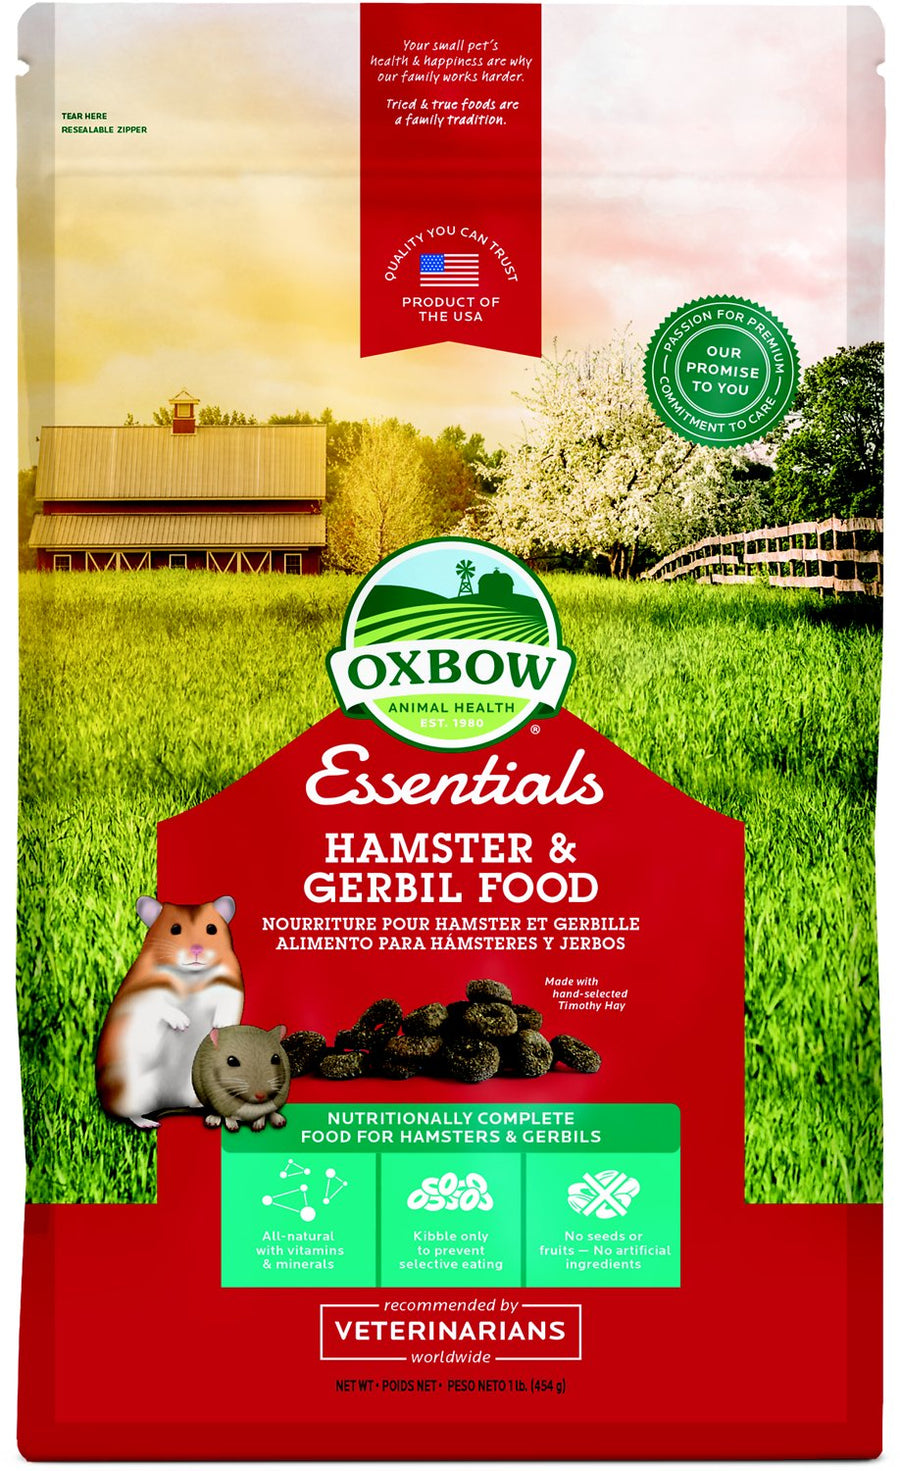 Oxbow Essentials Hamster & Gerbil Food-Le Pup Pet Supplies and Grooming